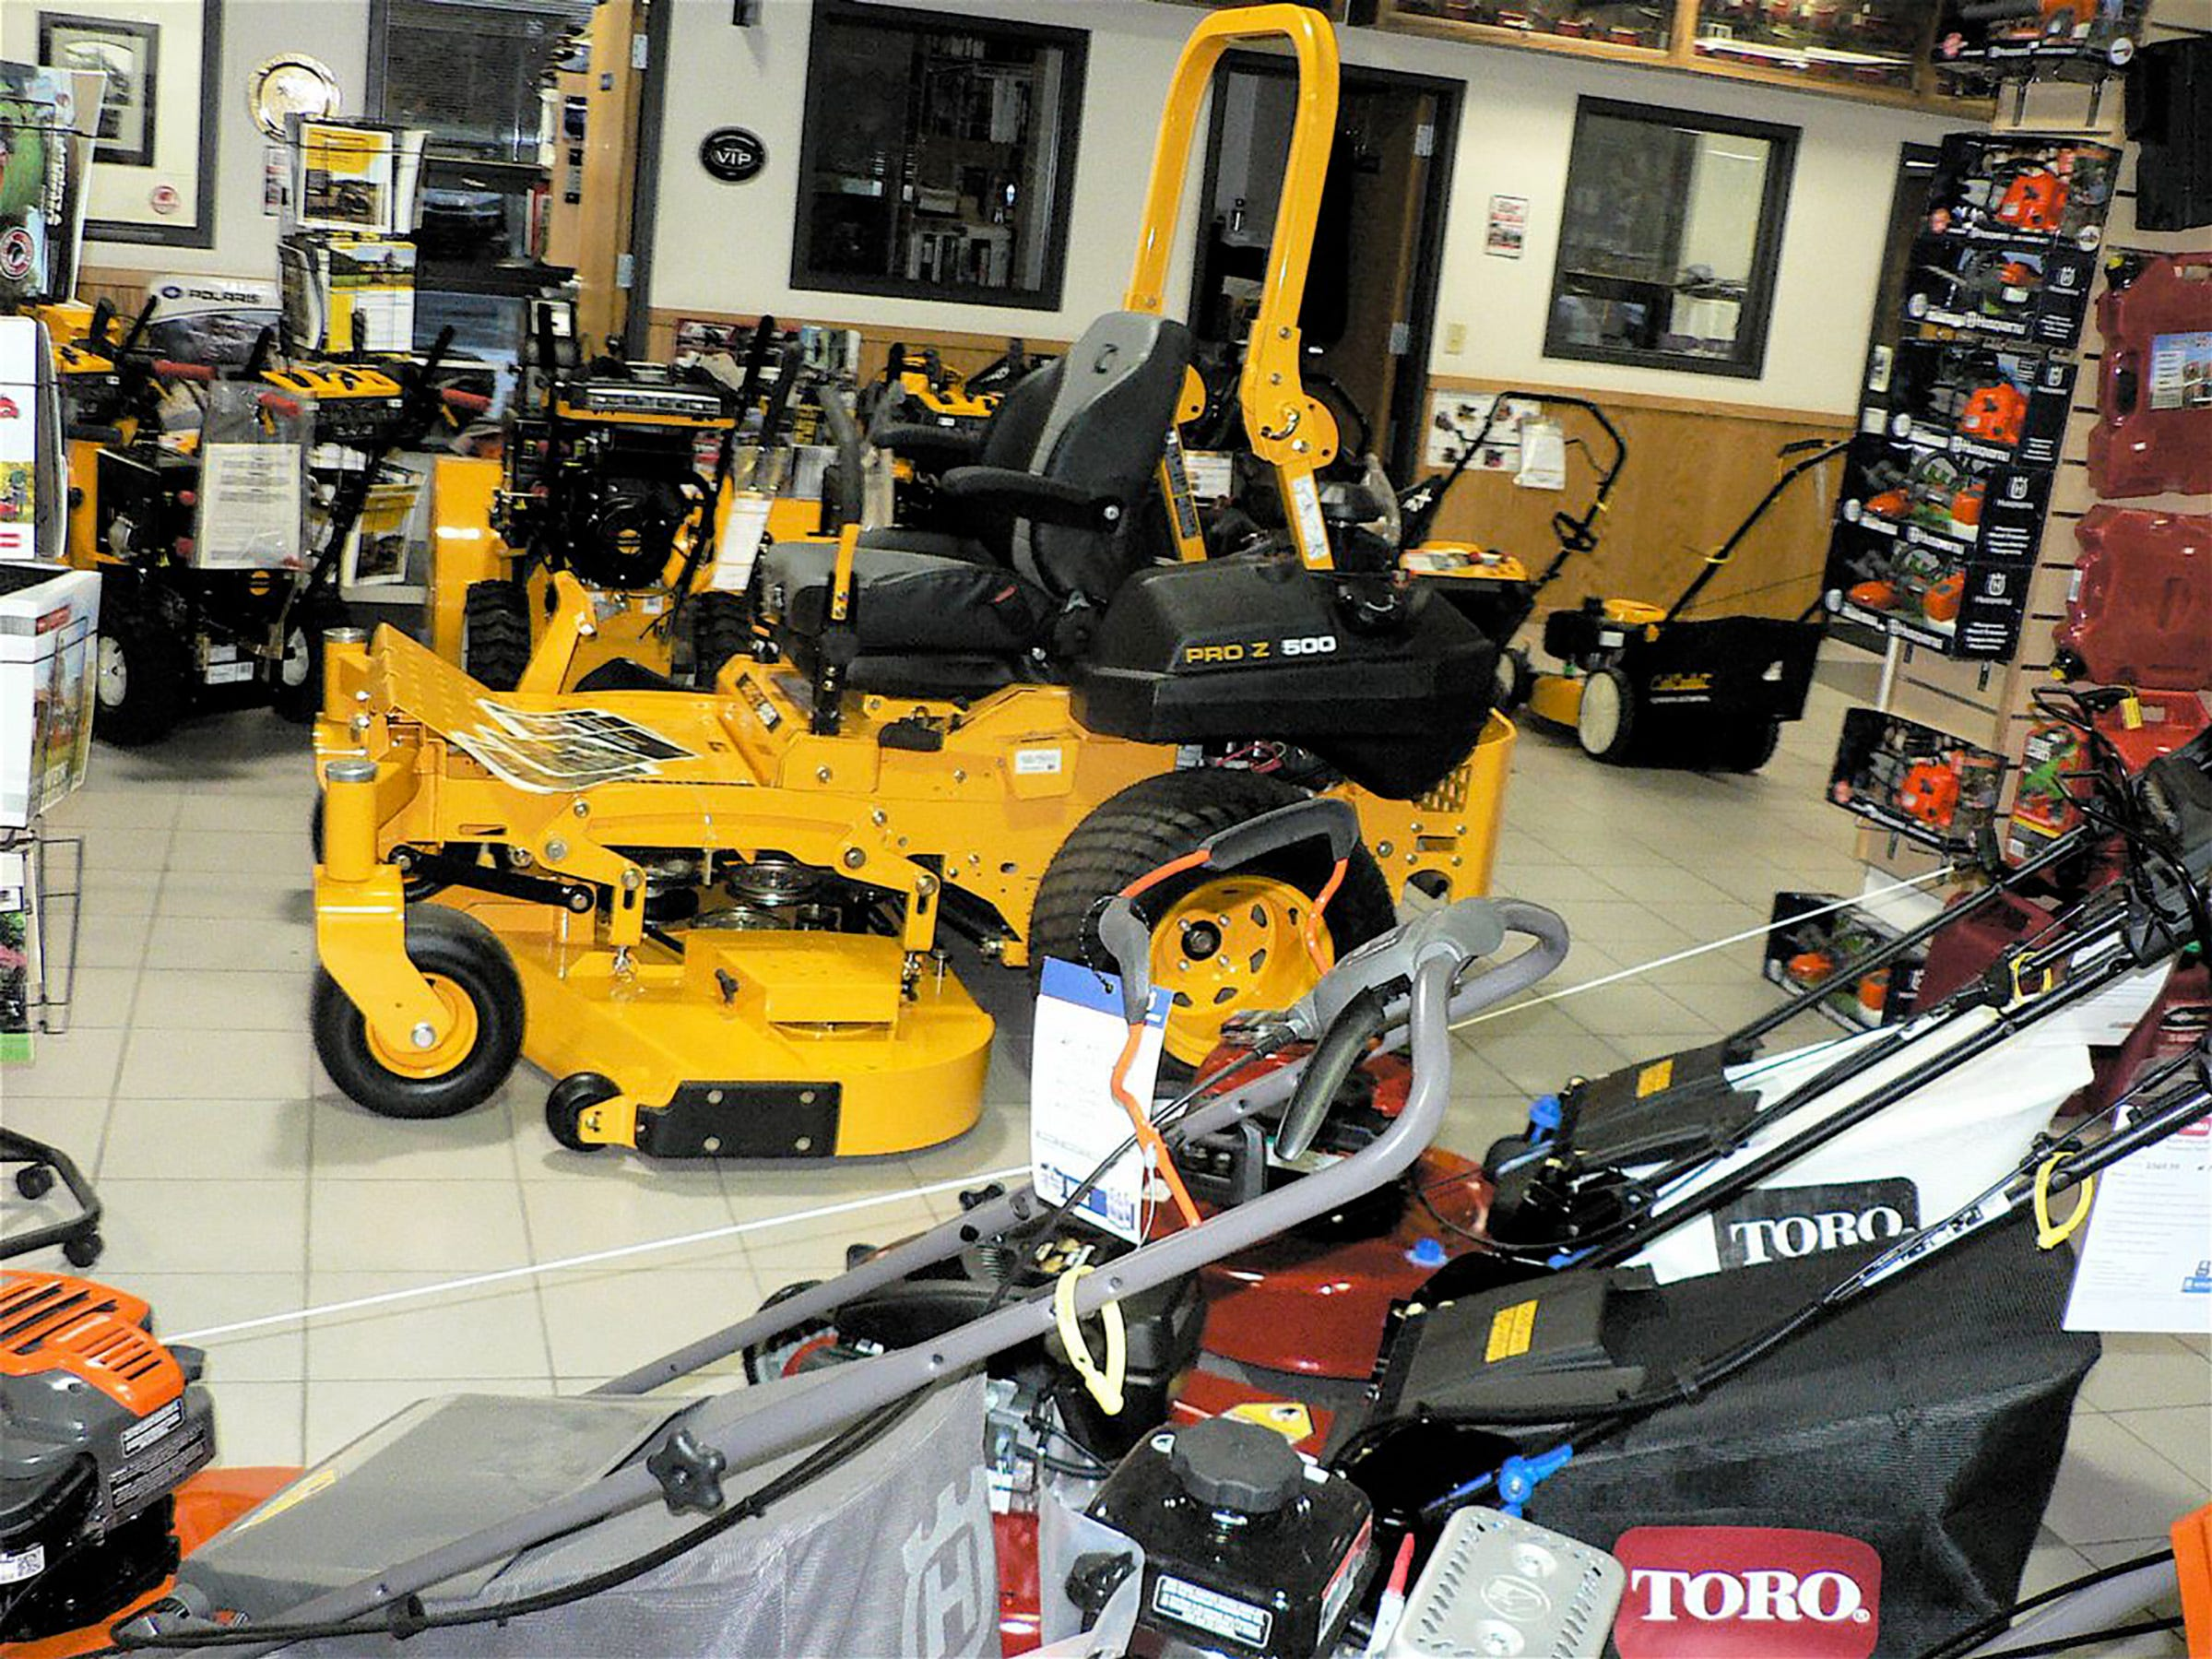 Consumer products like lawn mowers are becominga bigger part of the Statz business.